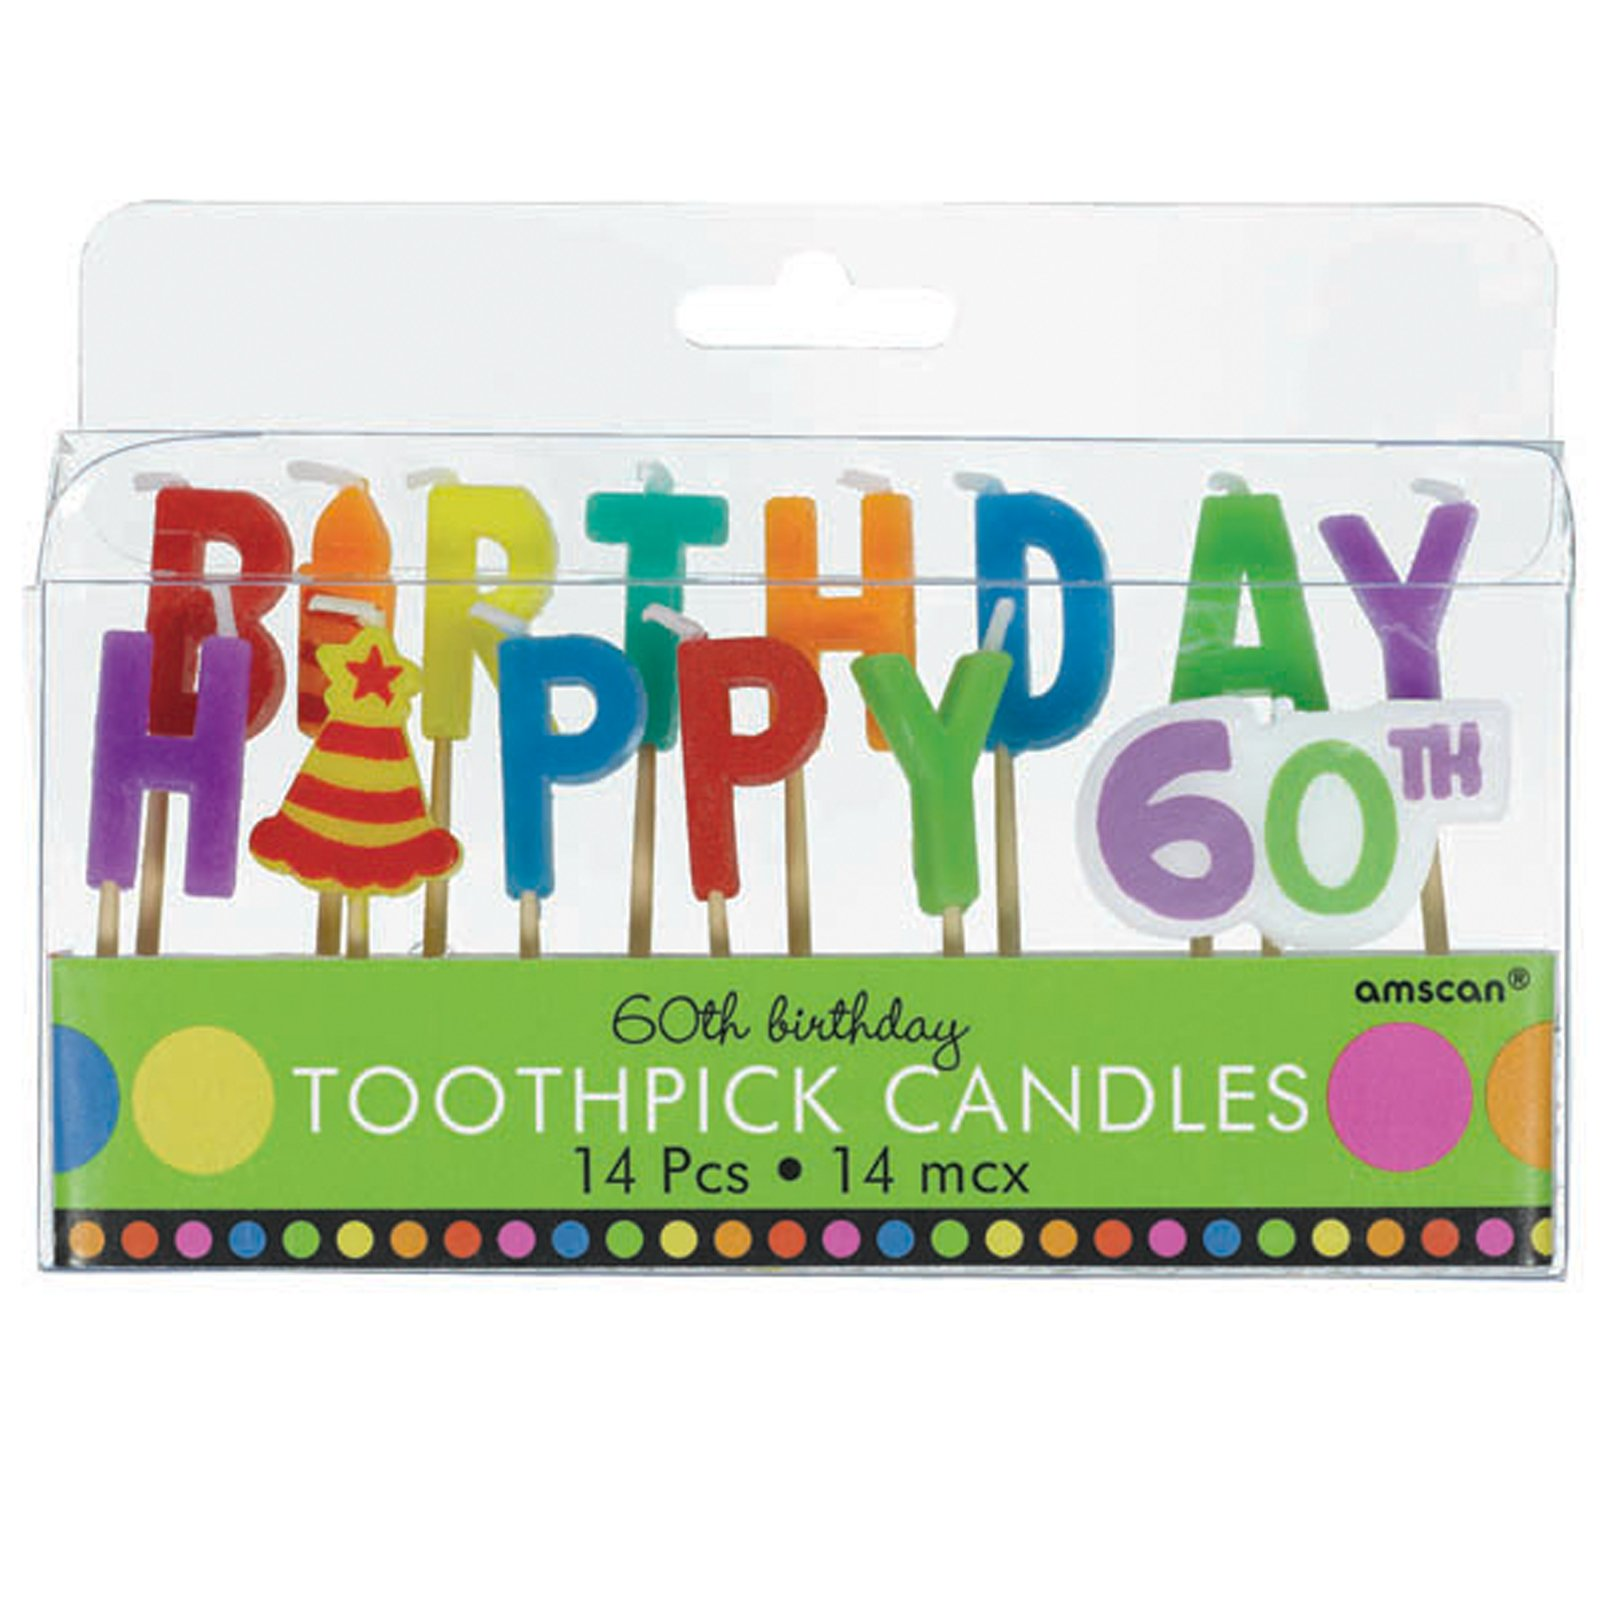 60th Birthday Toothpick Candles (14 count)